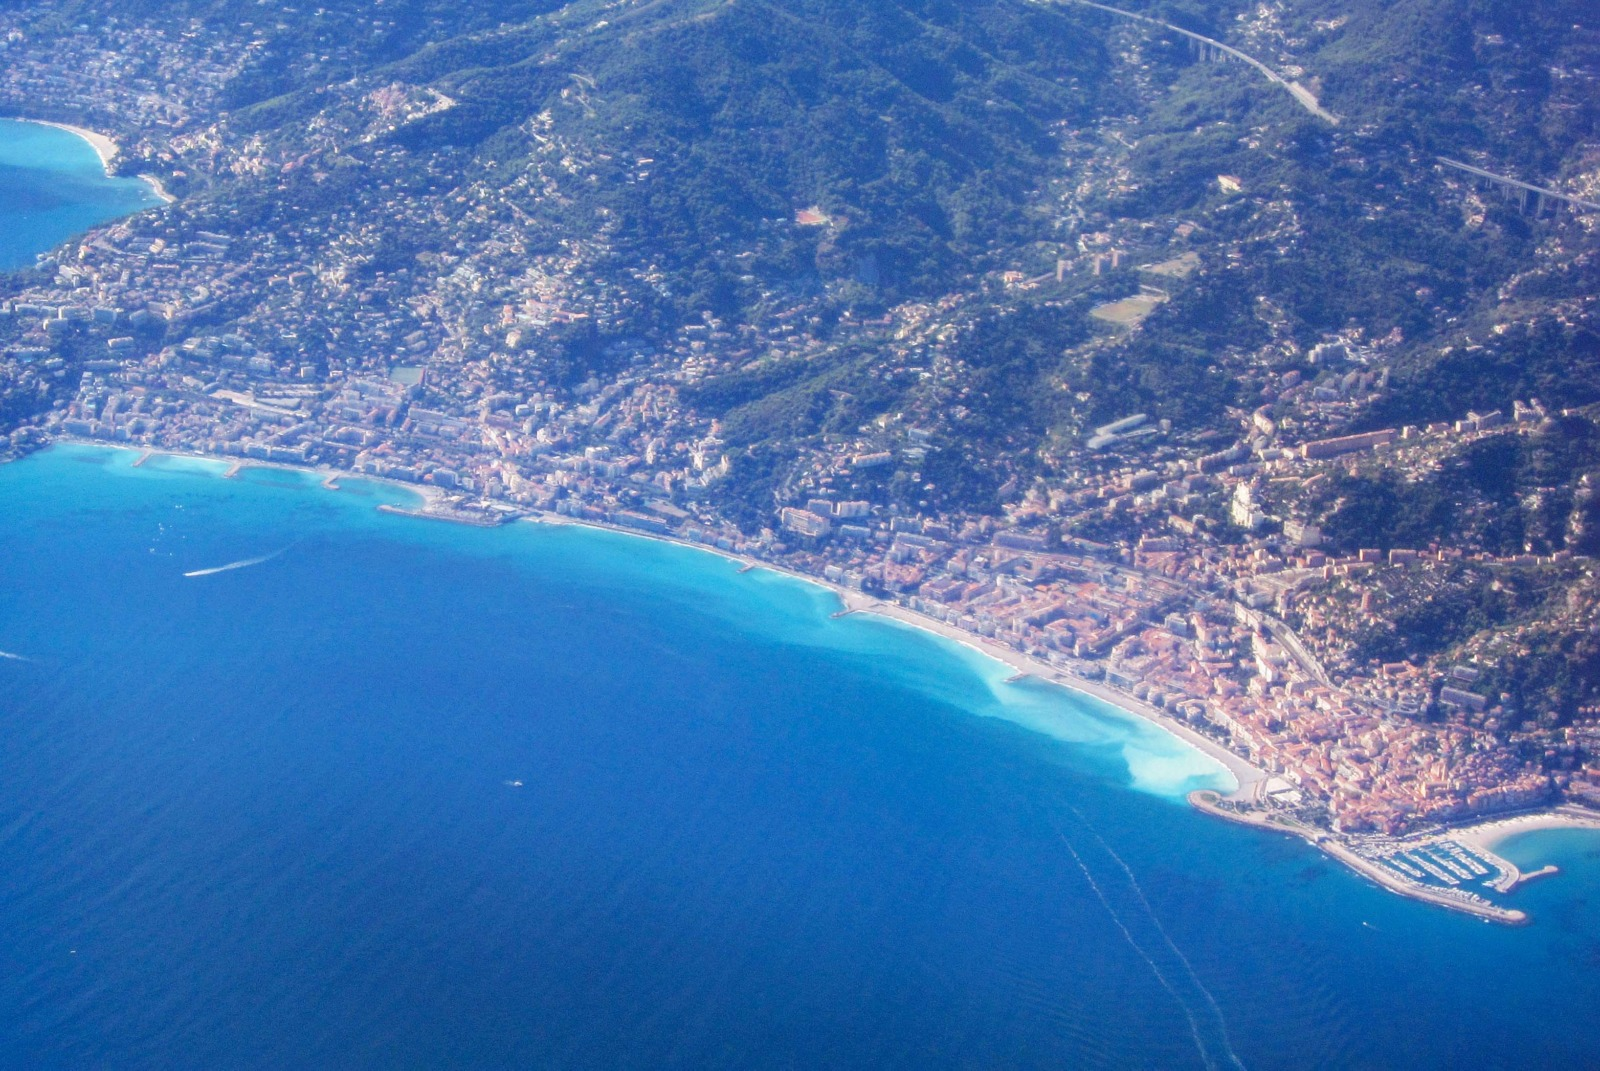 Menton from above © Olivier Cleynen - licence [CC BY 4.0] from Wikimedia Commons